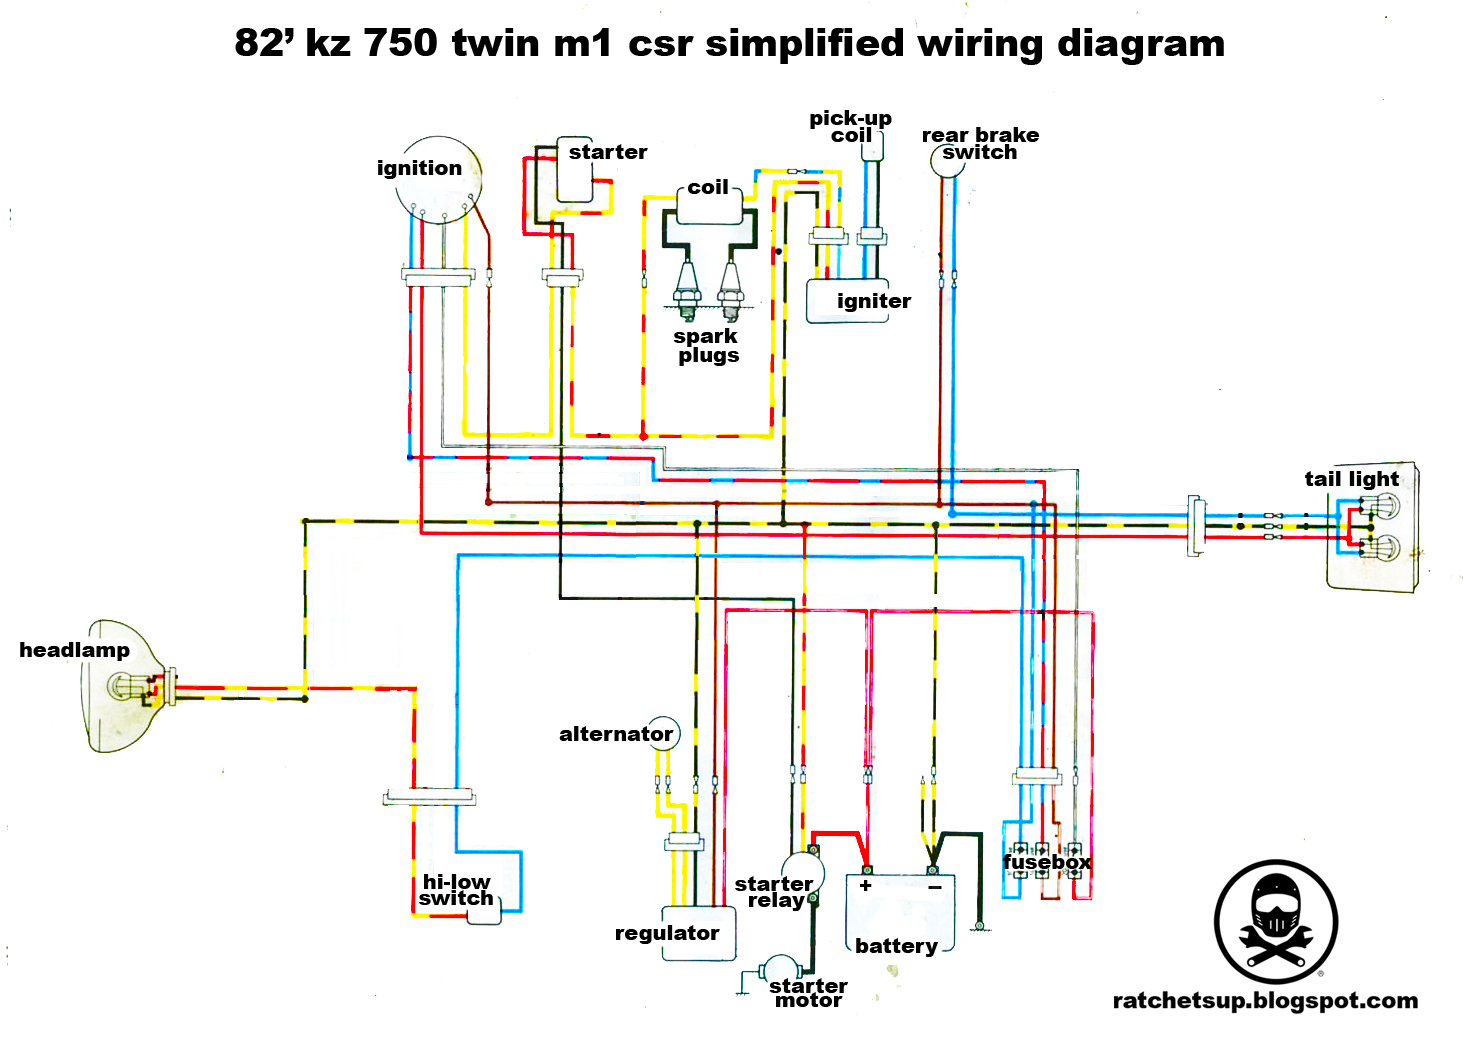 kz750+simple+diagram simplified minimal kz750 csr wiring diagram kzrider forum 1980 kawasaki kz750 wiring diagram at virtualis.co